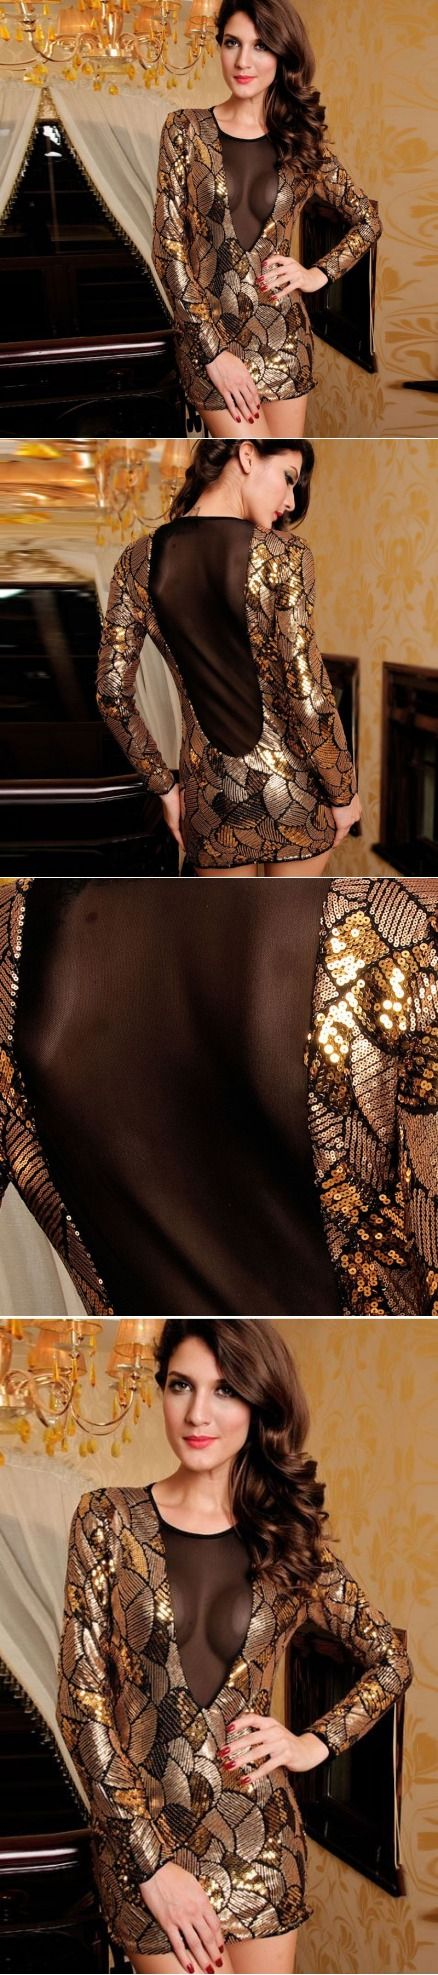 """Clipped Jumpsuit Sleeved Outfit Dresses Clubbing Sequined Holiday Tribal """"Pretty…"""